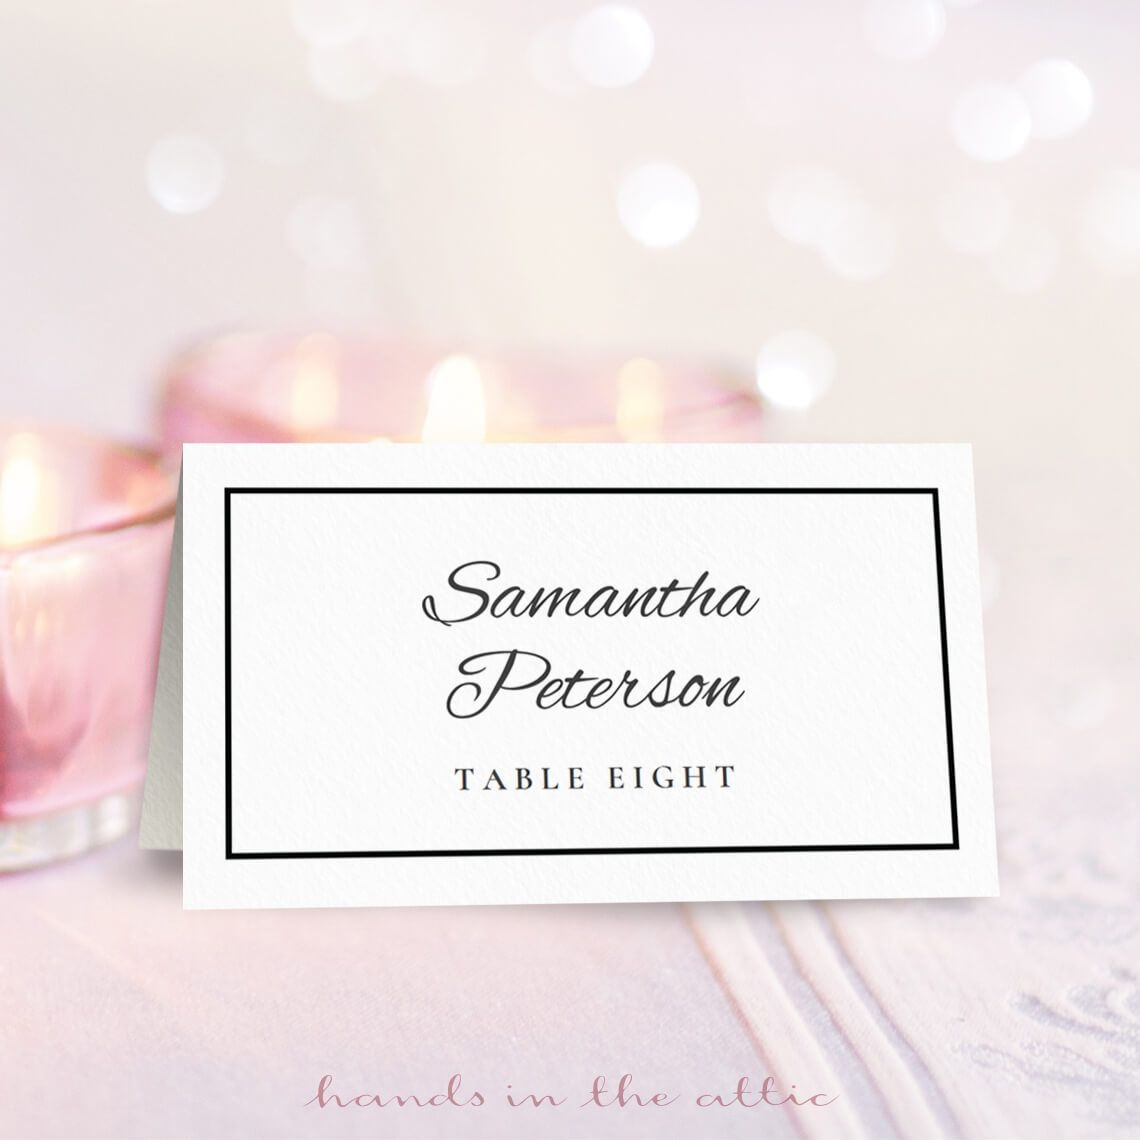 8 Free Wedding Place Card Templates - Free Printable Place Cards